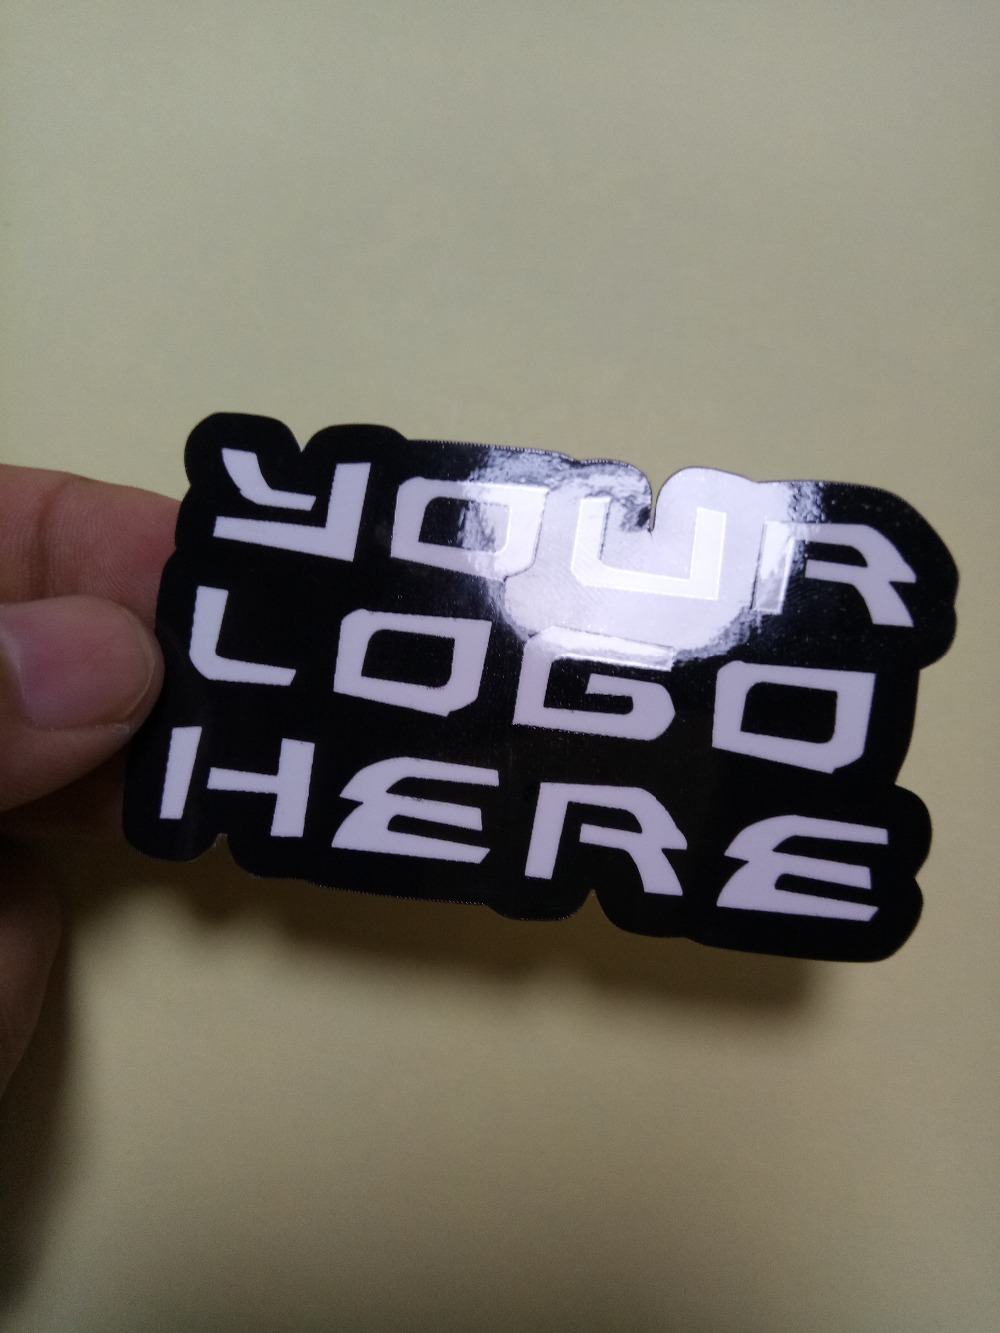 Custom printed waterproof die cut logo adhesive vinyl pvc sticker custom adhesive sticker printing custom sticker